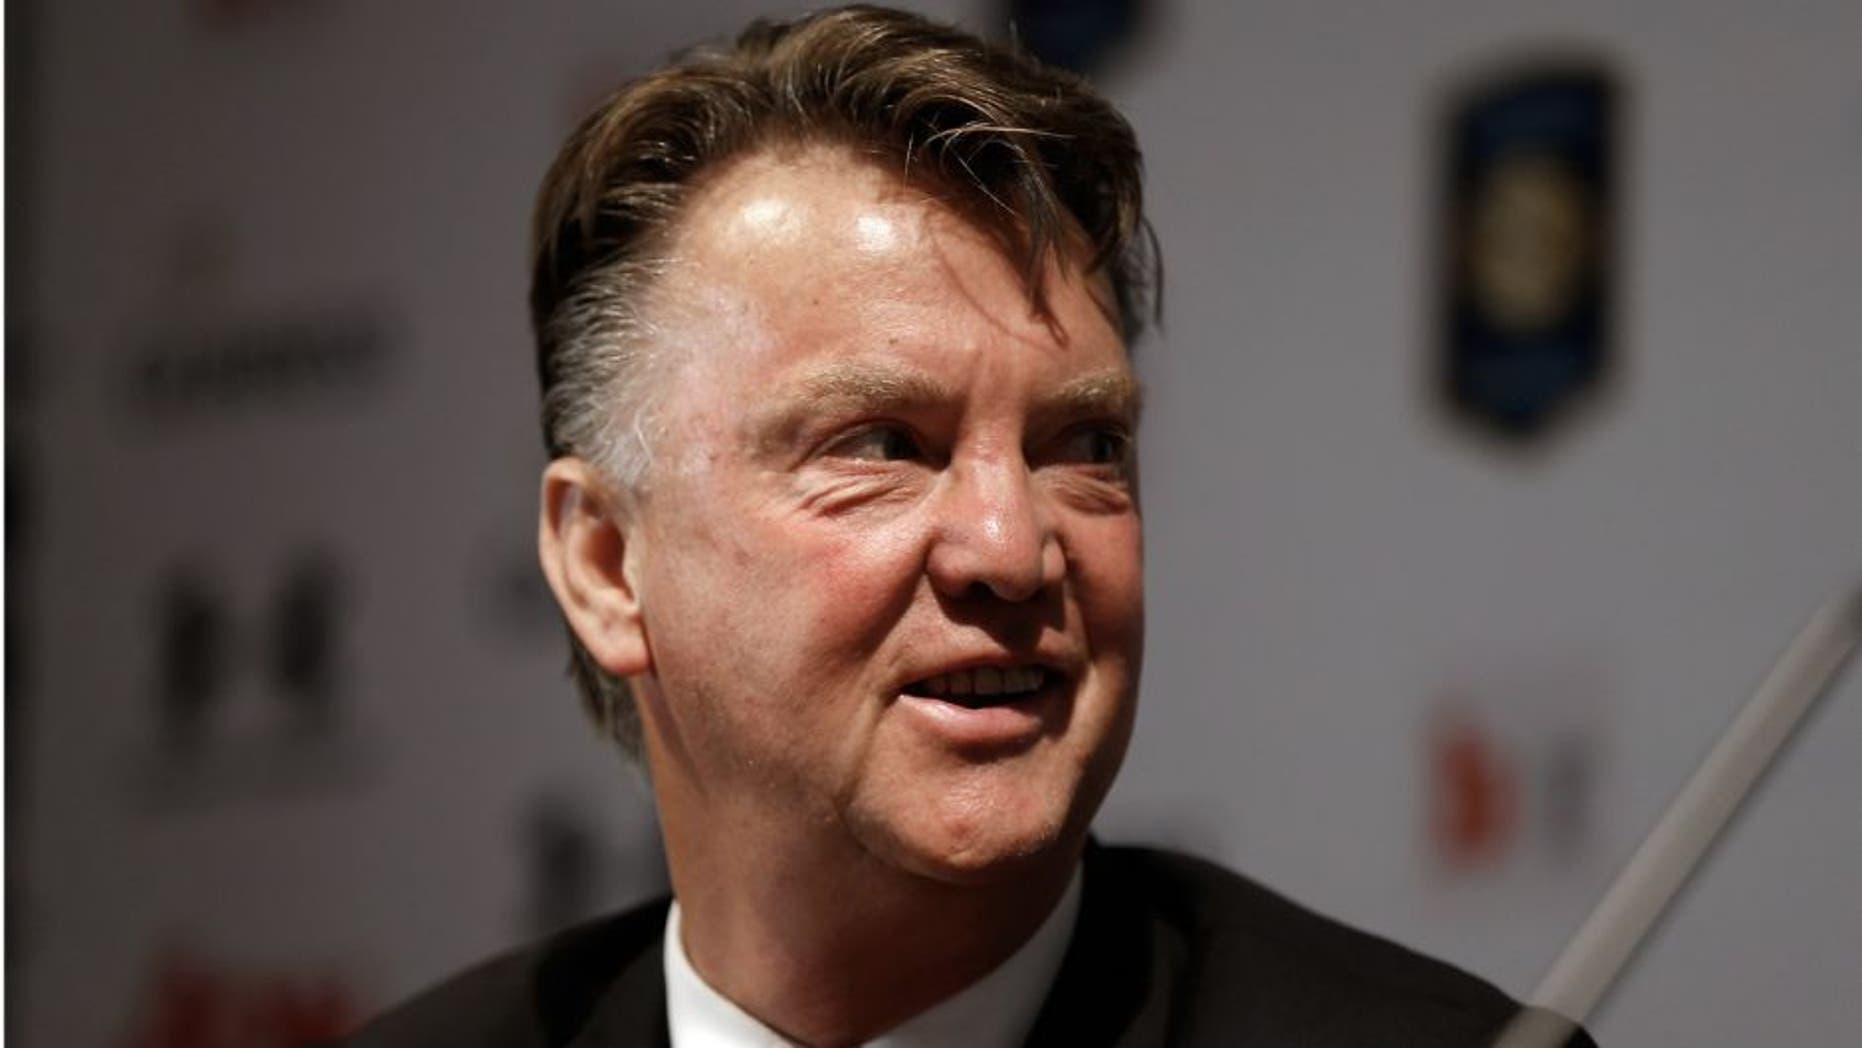 SAN JOSE, CA - JULY 20: Manager Louis van Gaal of Manchester United speaks during a press conference at Avaya Stadium on July 20, 2015 in San Jose, California. Manchester United will face the San Jose Earthquakes in an international friendly on July 21. (Photo by Stephen Lam - MUFC/Getty Iamges)